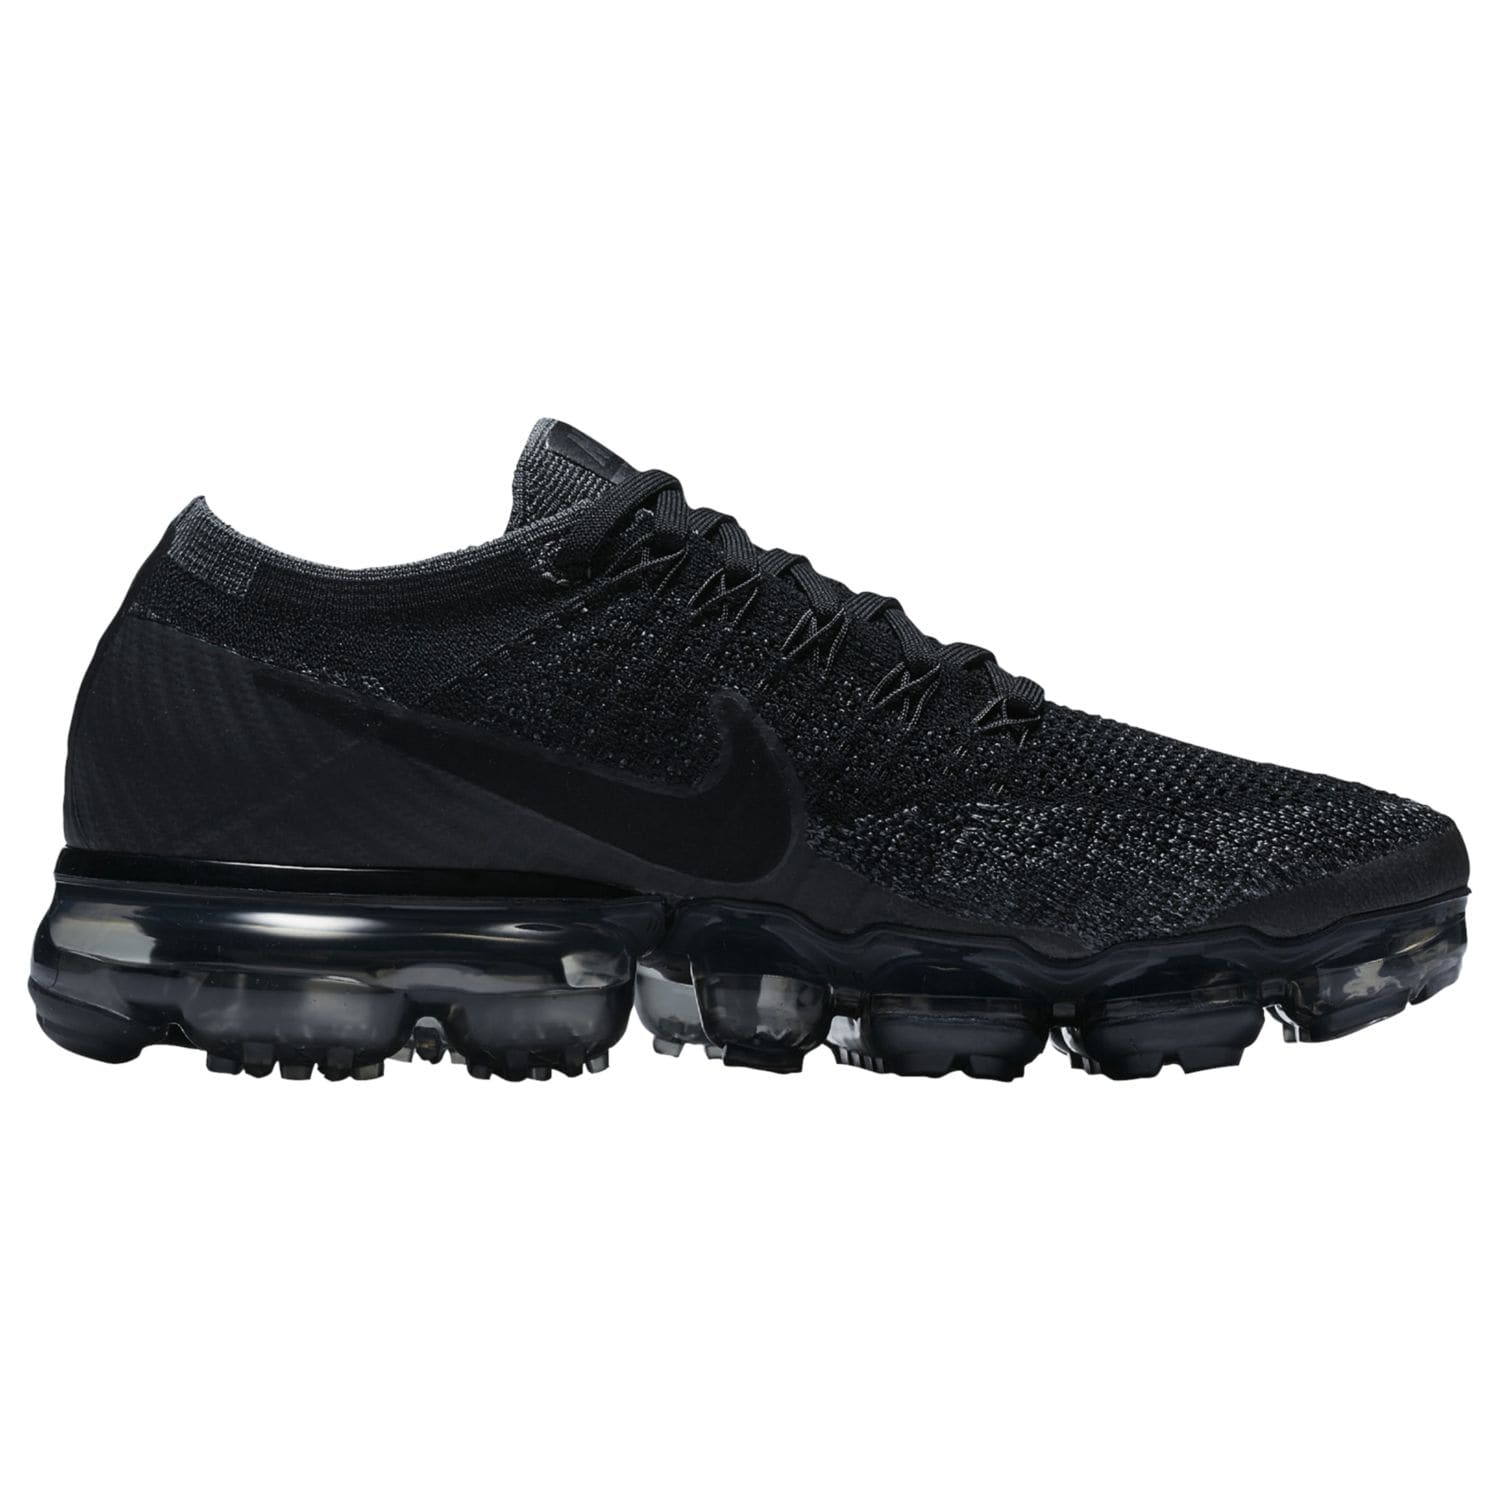 low priced 9ade2 4e15d Nike Air VaporMax Flyknit - Women s - Running - Shoes - Black .